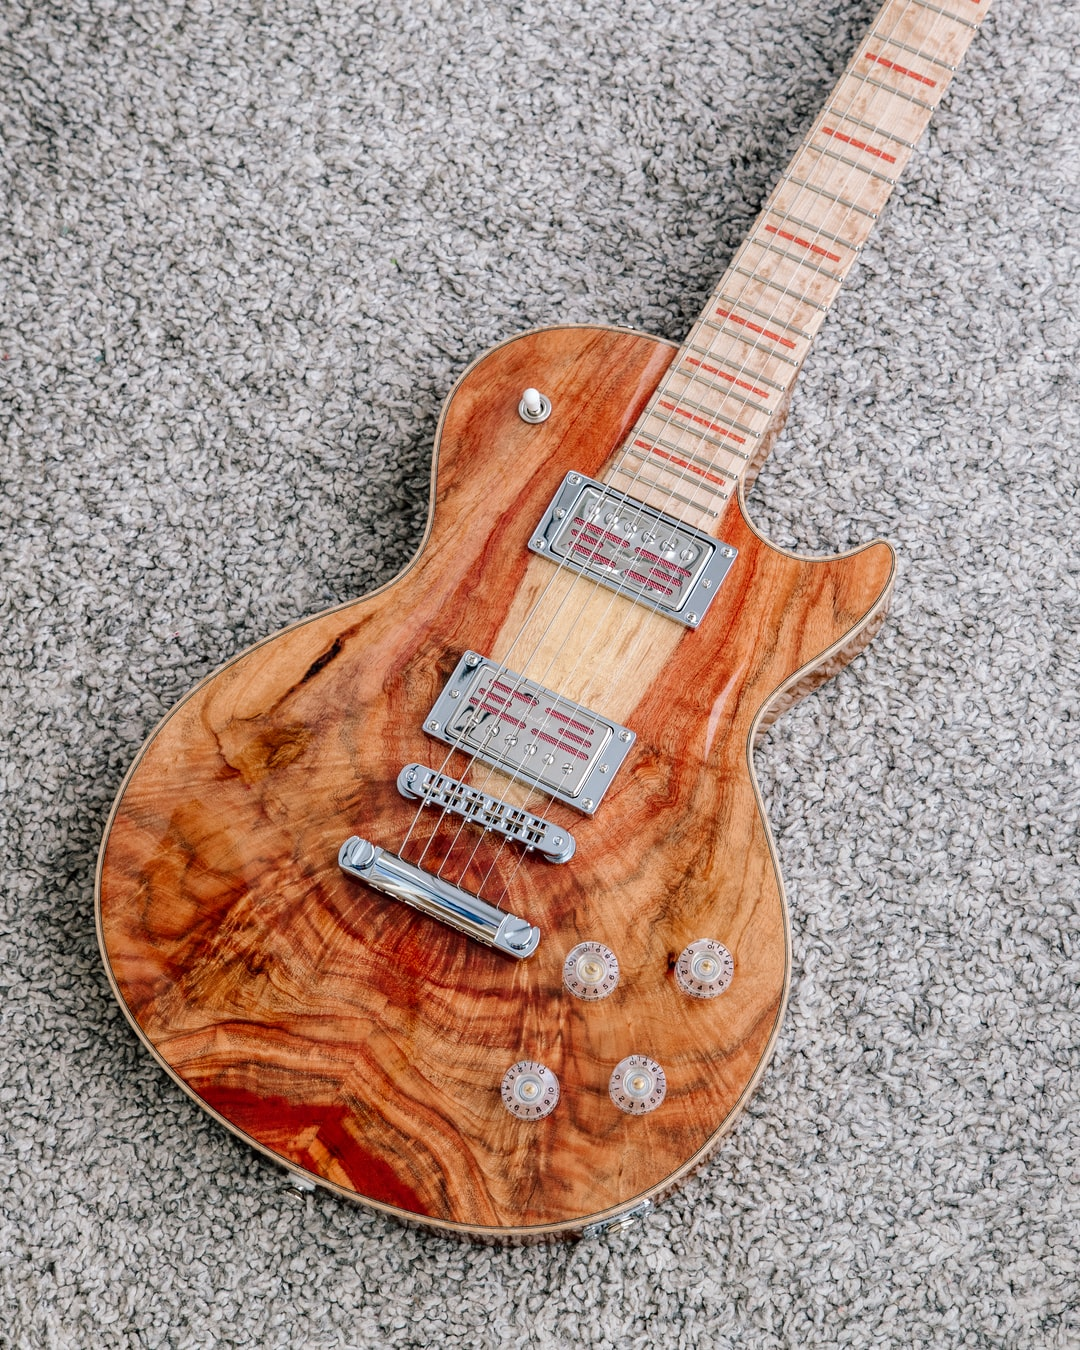 A custom made Les Paul guitar with natural red colour from the carob wood used by the guitar maker. An art piece from a French guitar maker.